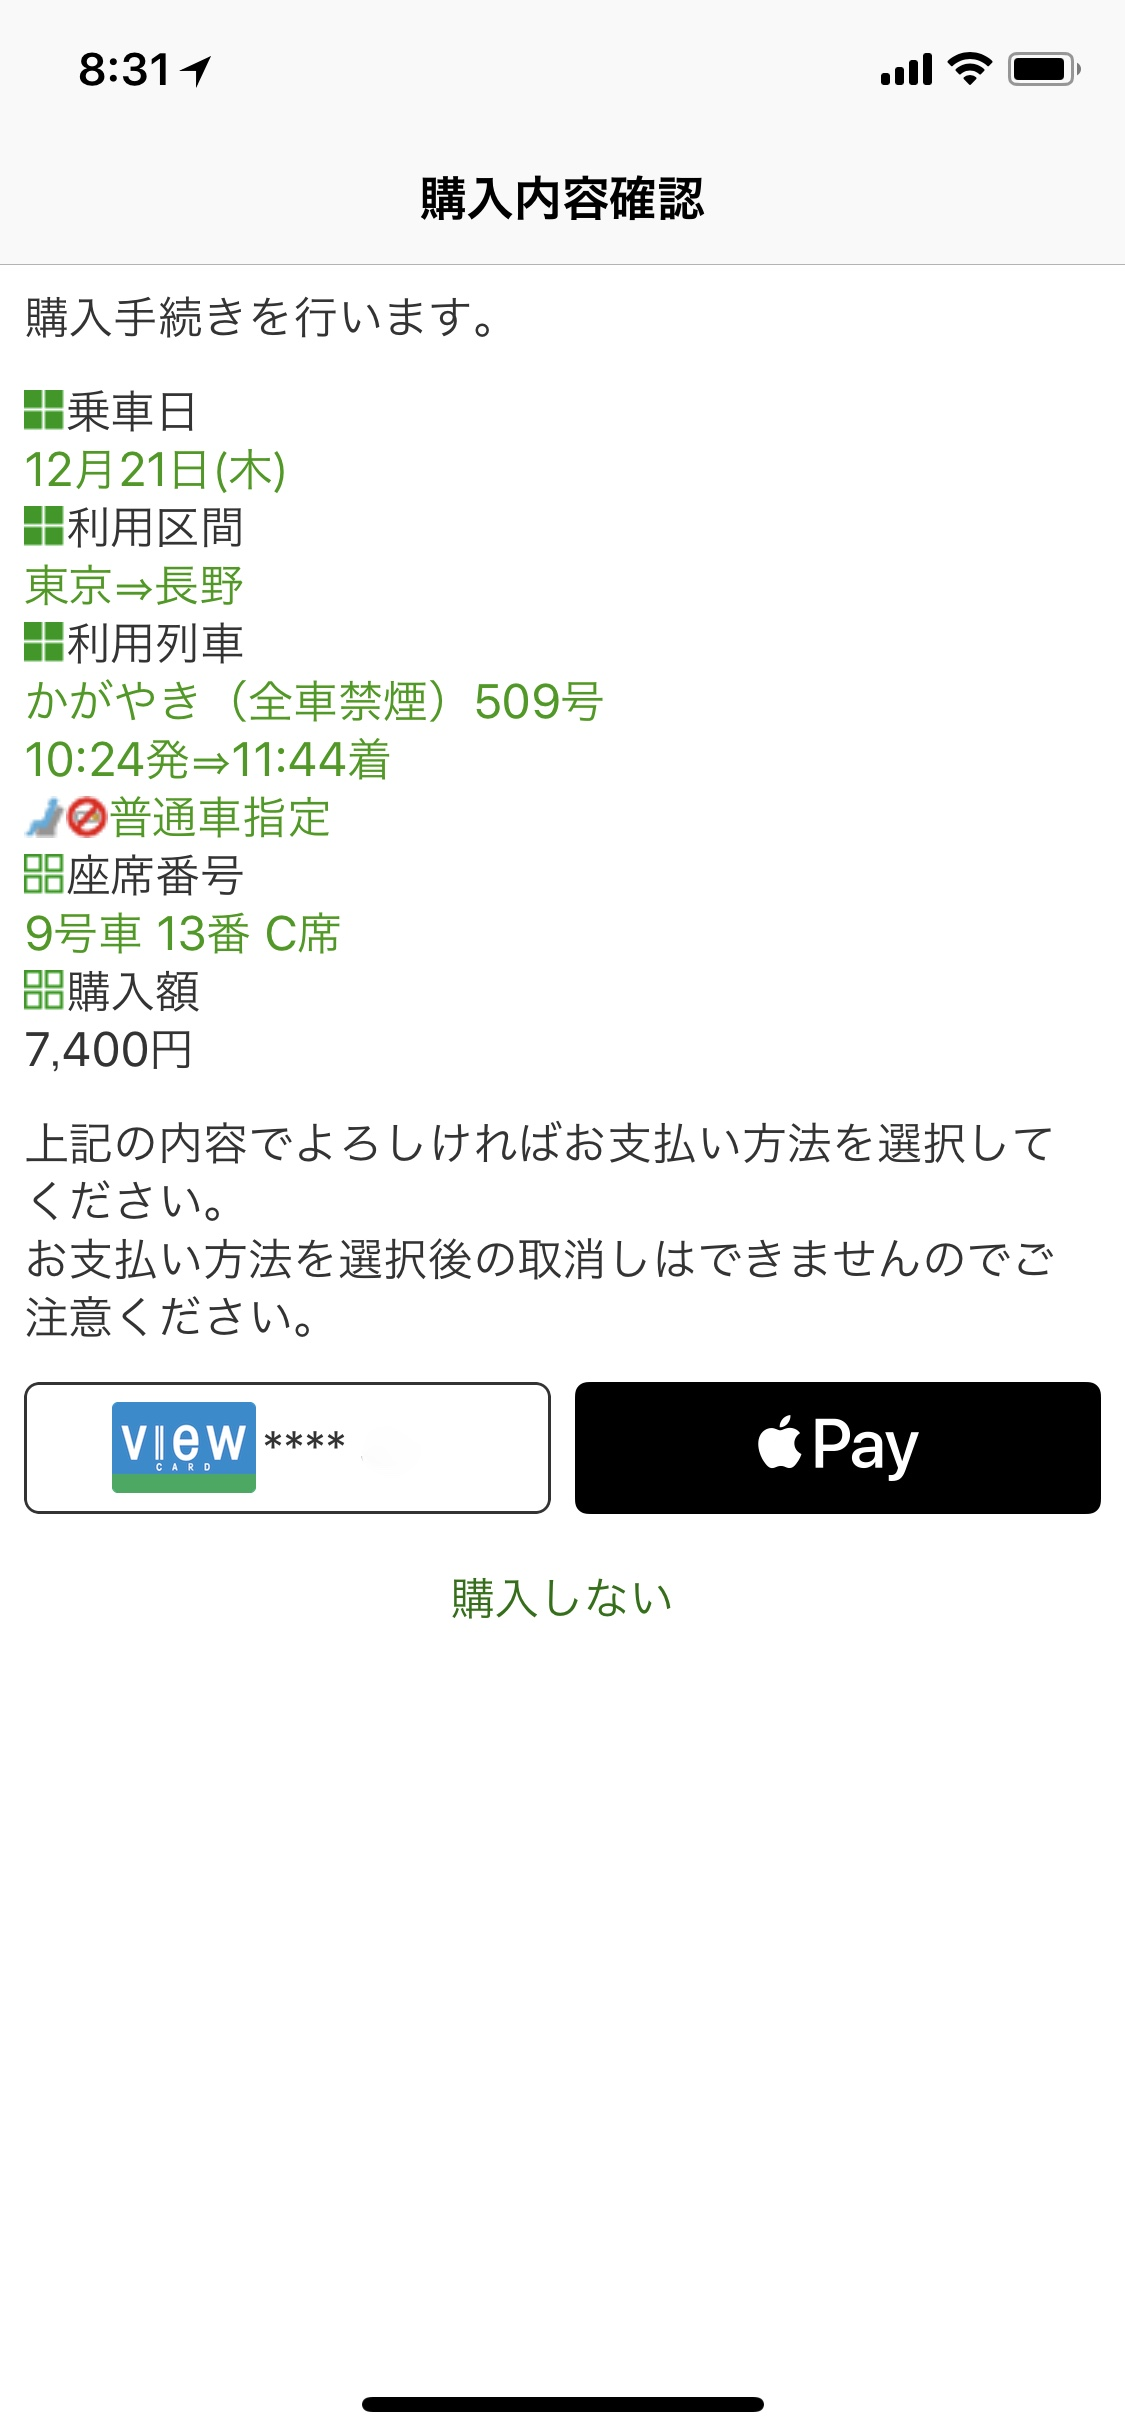 In the final screen confirm your details then tap Apple Pay or Mobile Suica Pay to purchase your e-ticket. Don't forget to download it in Wallet before entering the ticket gate.